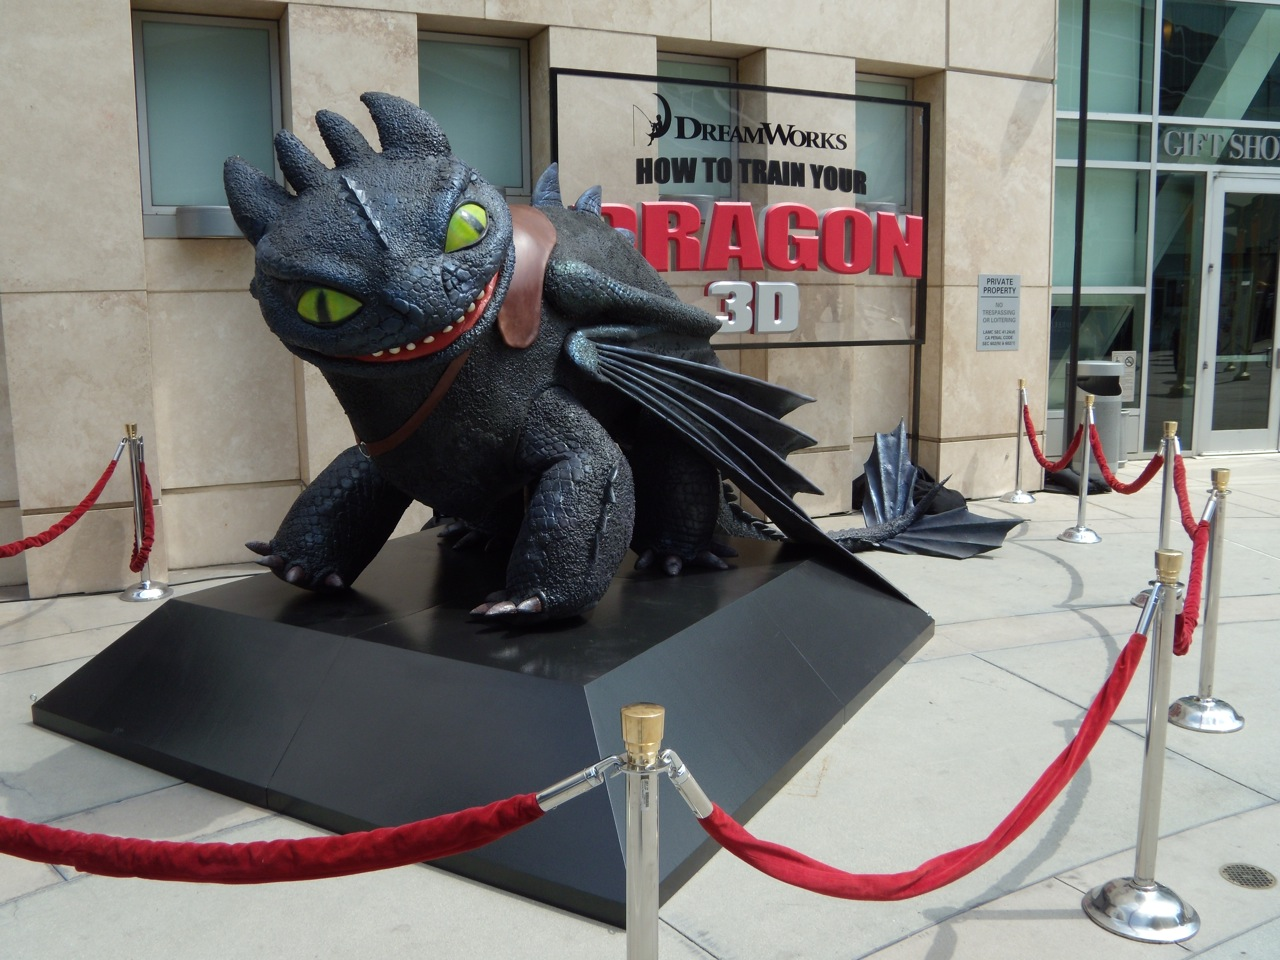 Hollywood movie costumes and props toothless night fury dragon from toothless from how to train your dragon ccuart Gallery